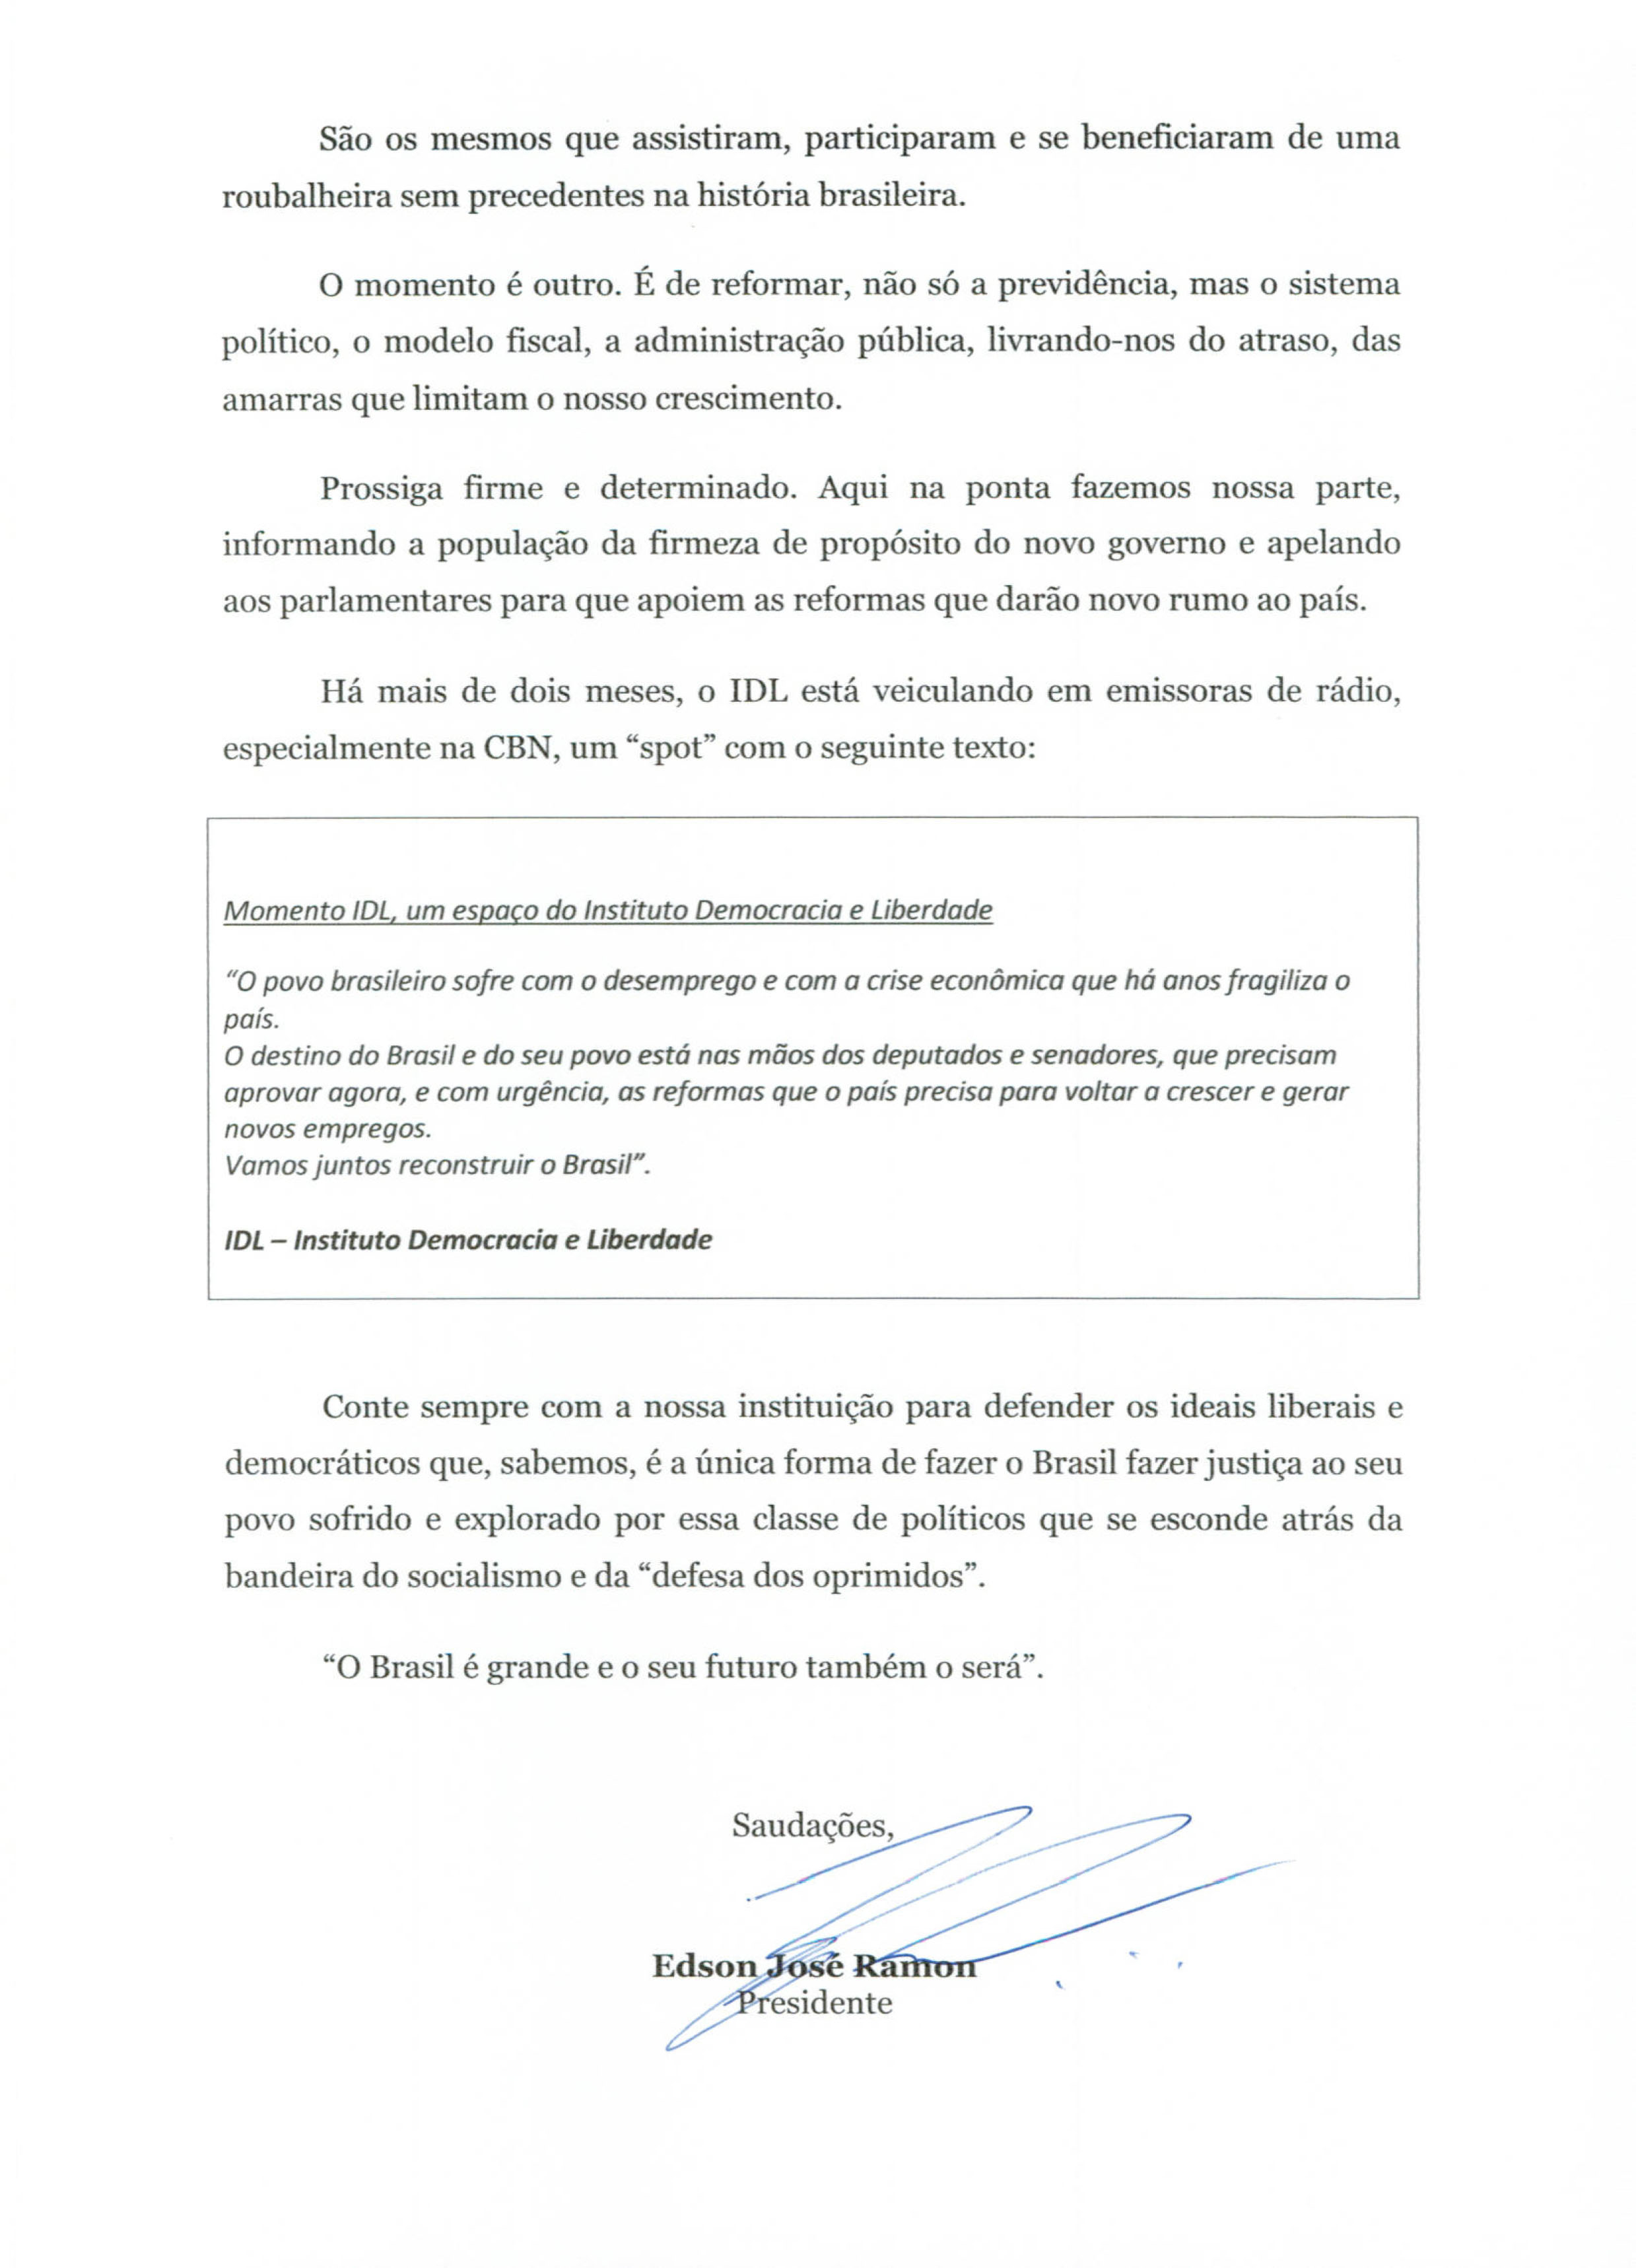 IDL - CARTA AO MINISTRO PAULO GUEDES 05_04_2019-2